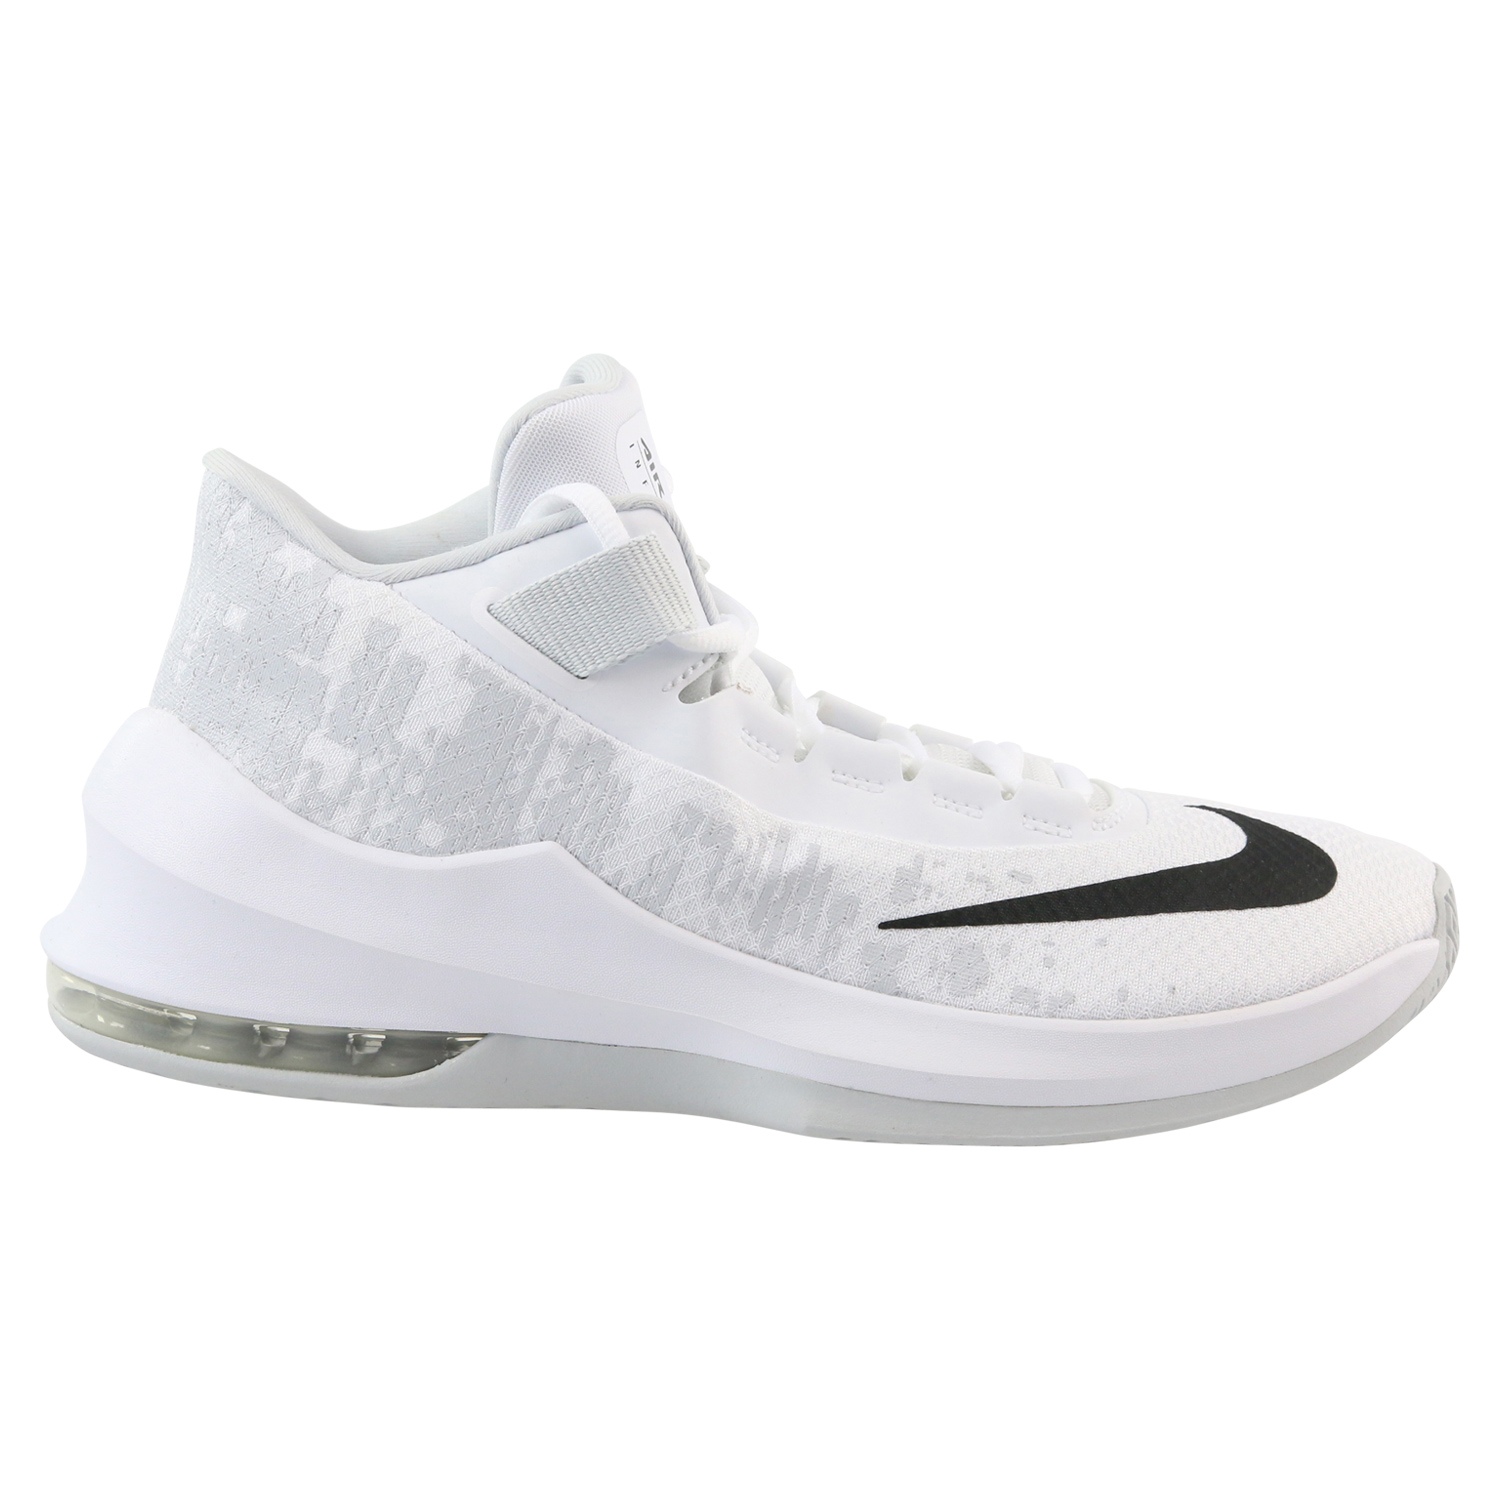 separation shoes ab201 63cd9 Nike Air Max Infuriate 2 Mid Basketballschuhe Herren Sneaker